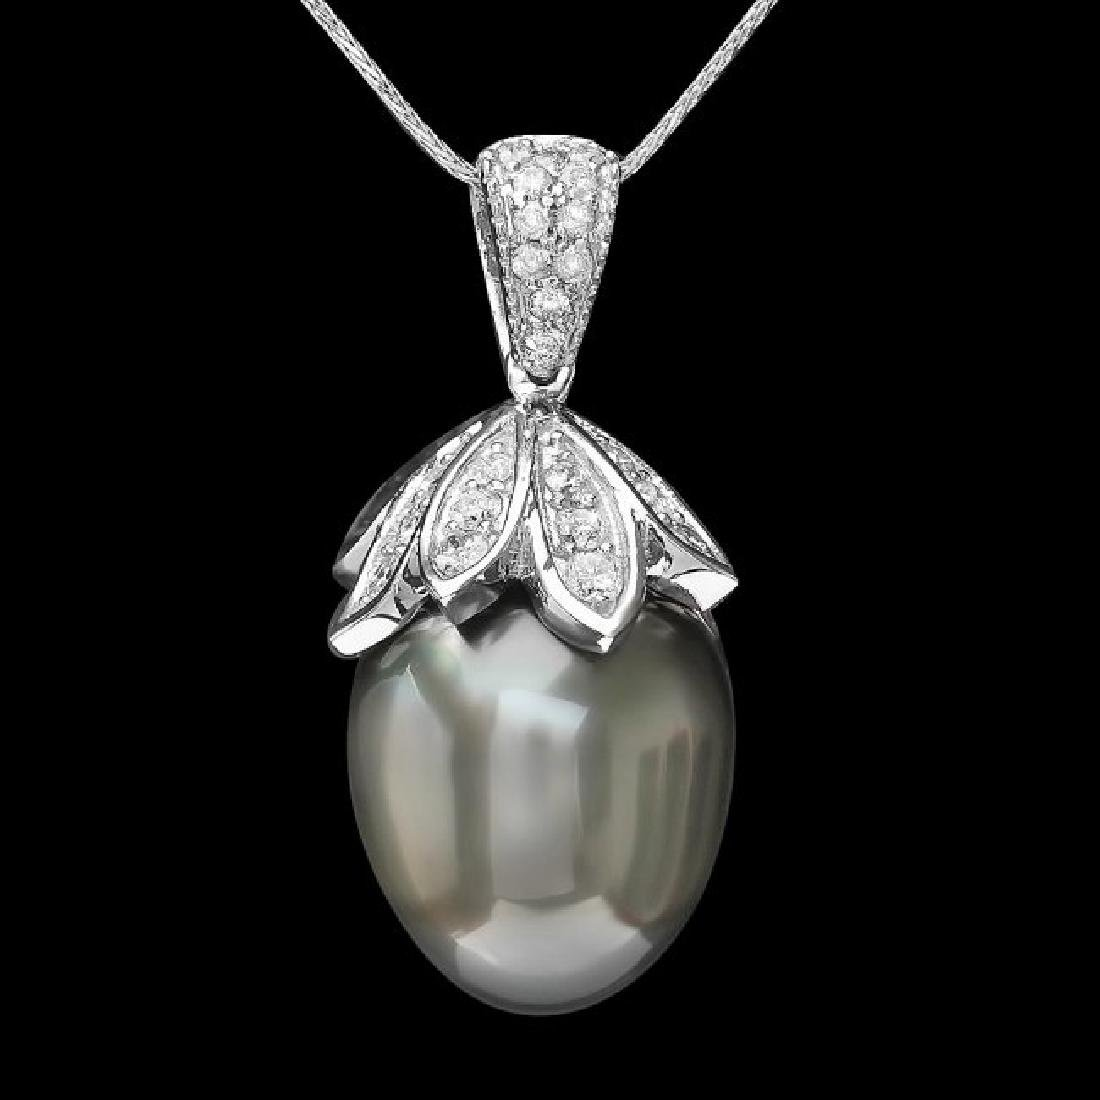 14k Gold 16 X 20mm Pearl 1.30ct Diamond Pendant - 2